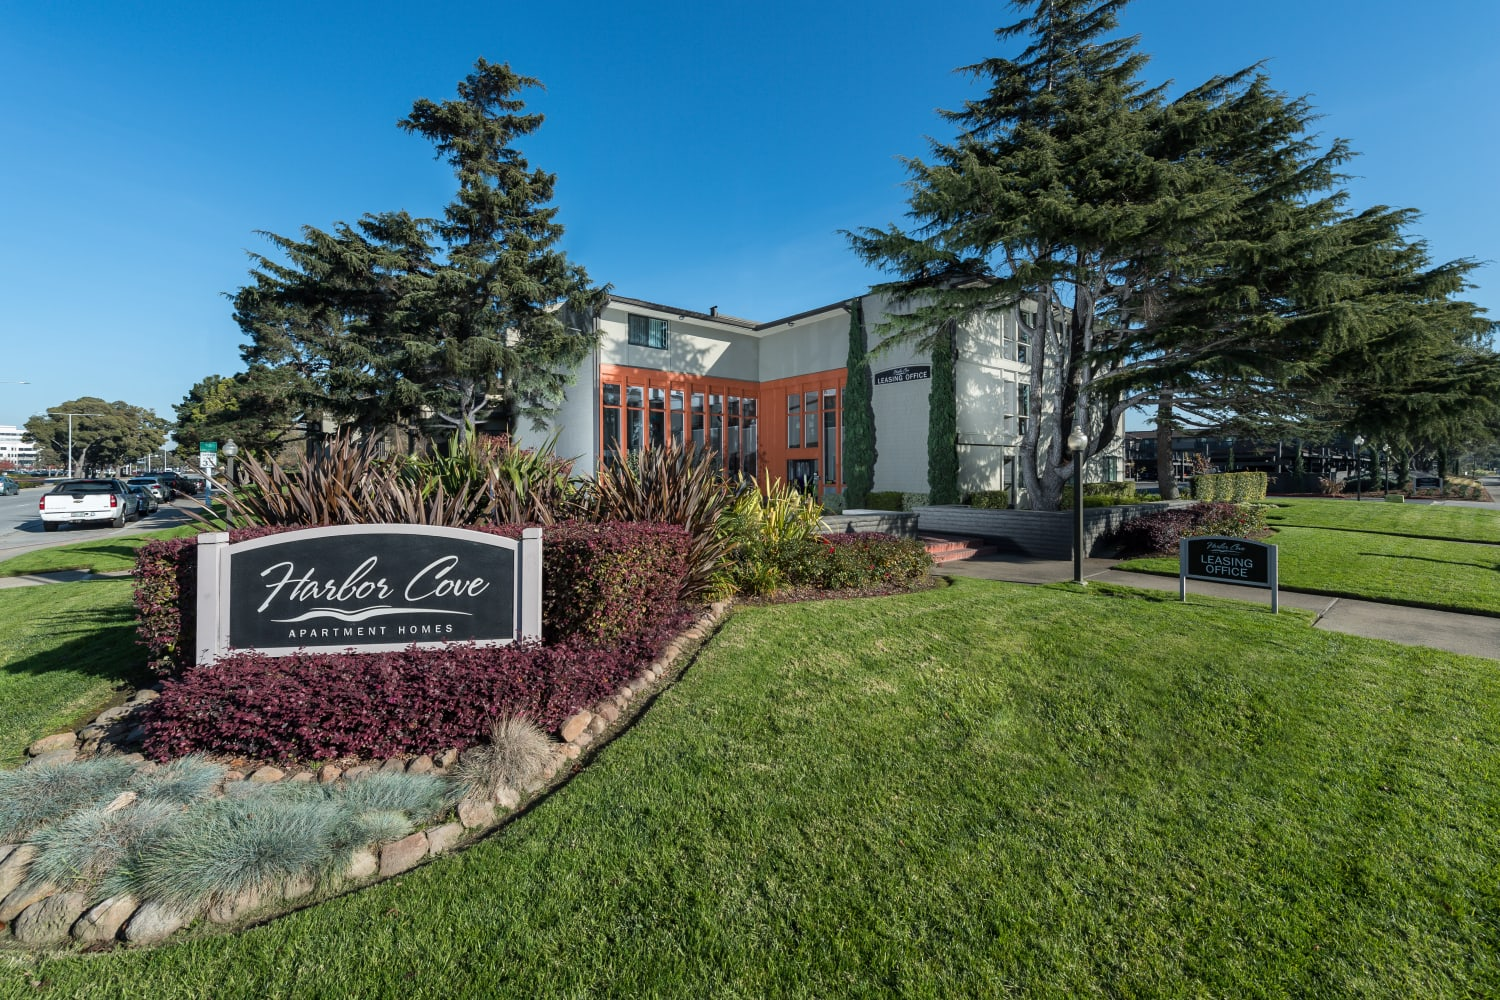 Front sign at Harbor Cove Apartments in Foster City, California